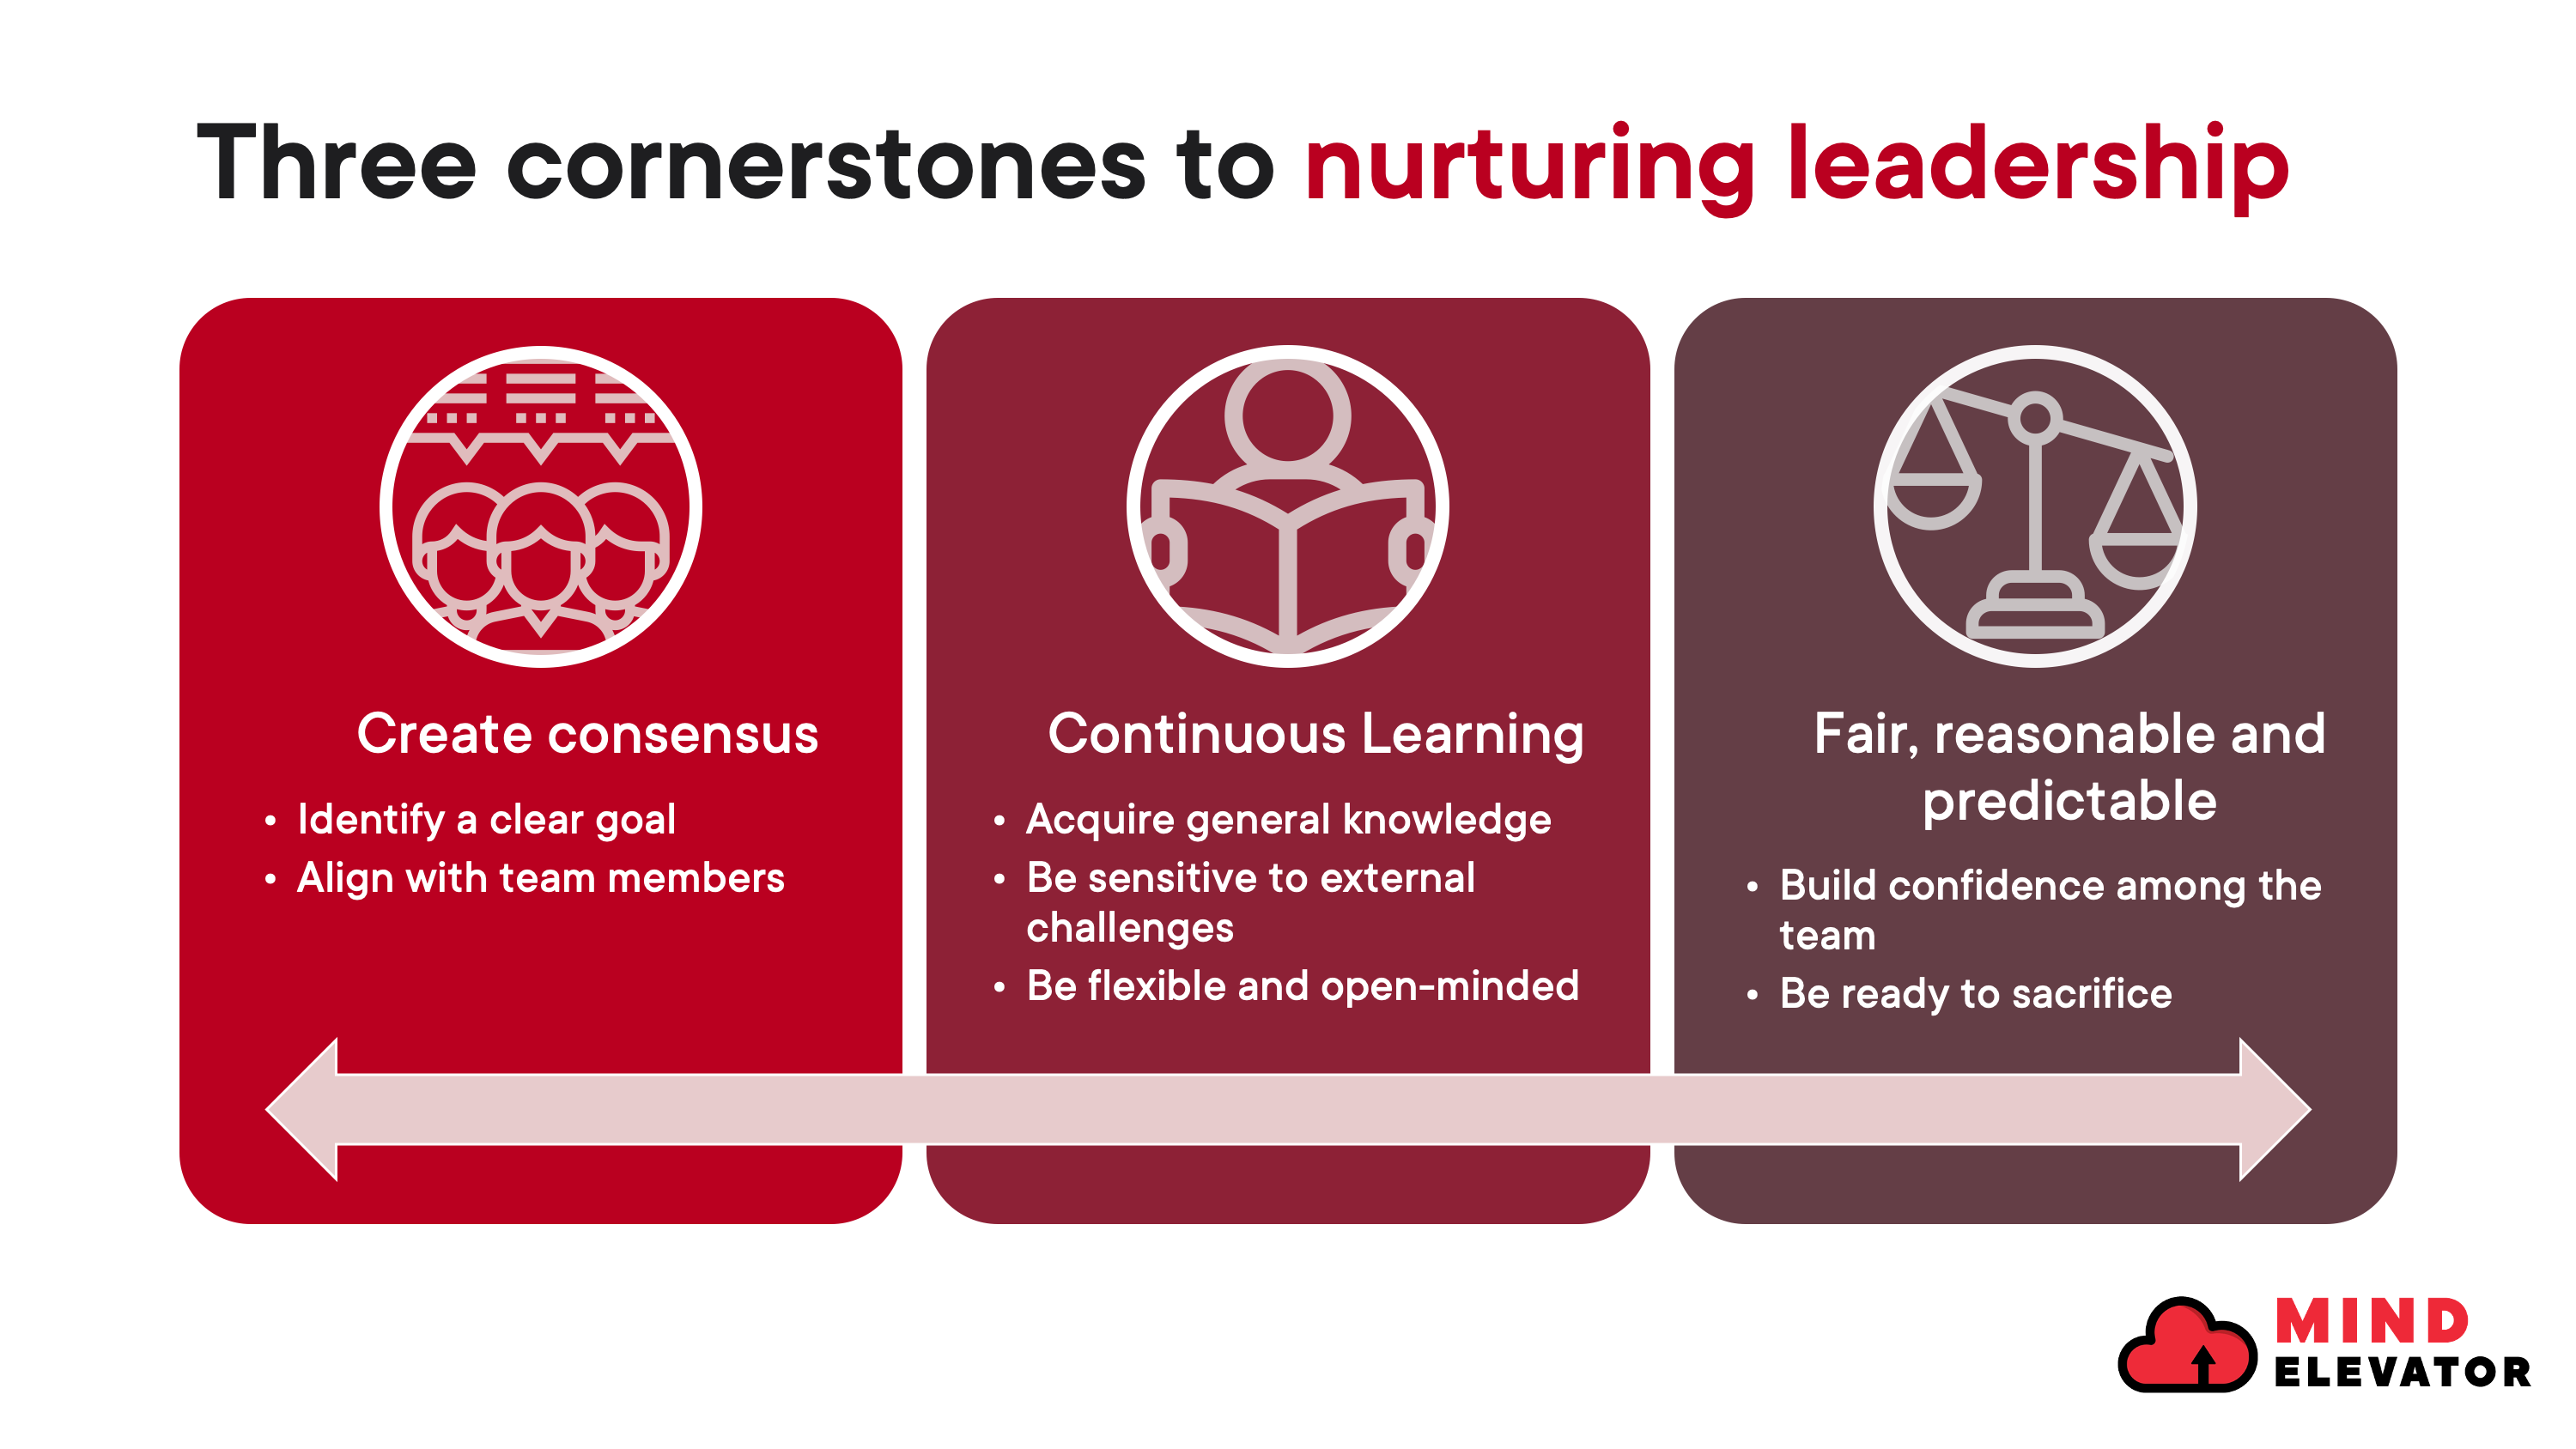 Three cornerstones to nurturing leadership: create the consensus, continuous learning, be fair, reasonable and predictable